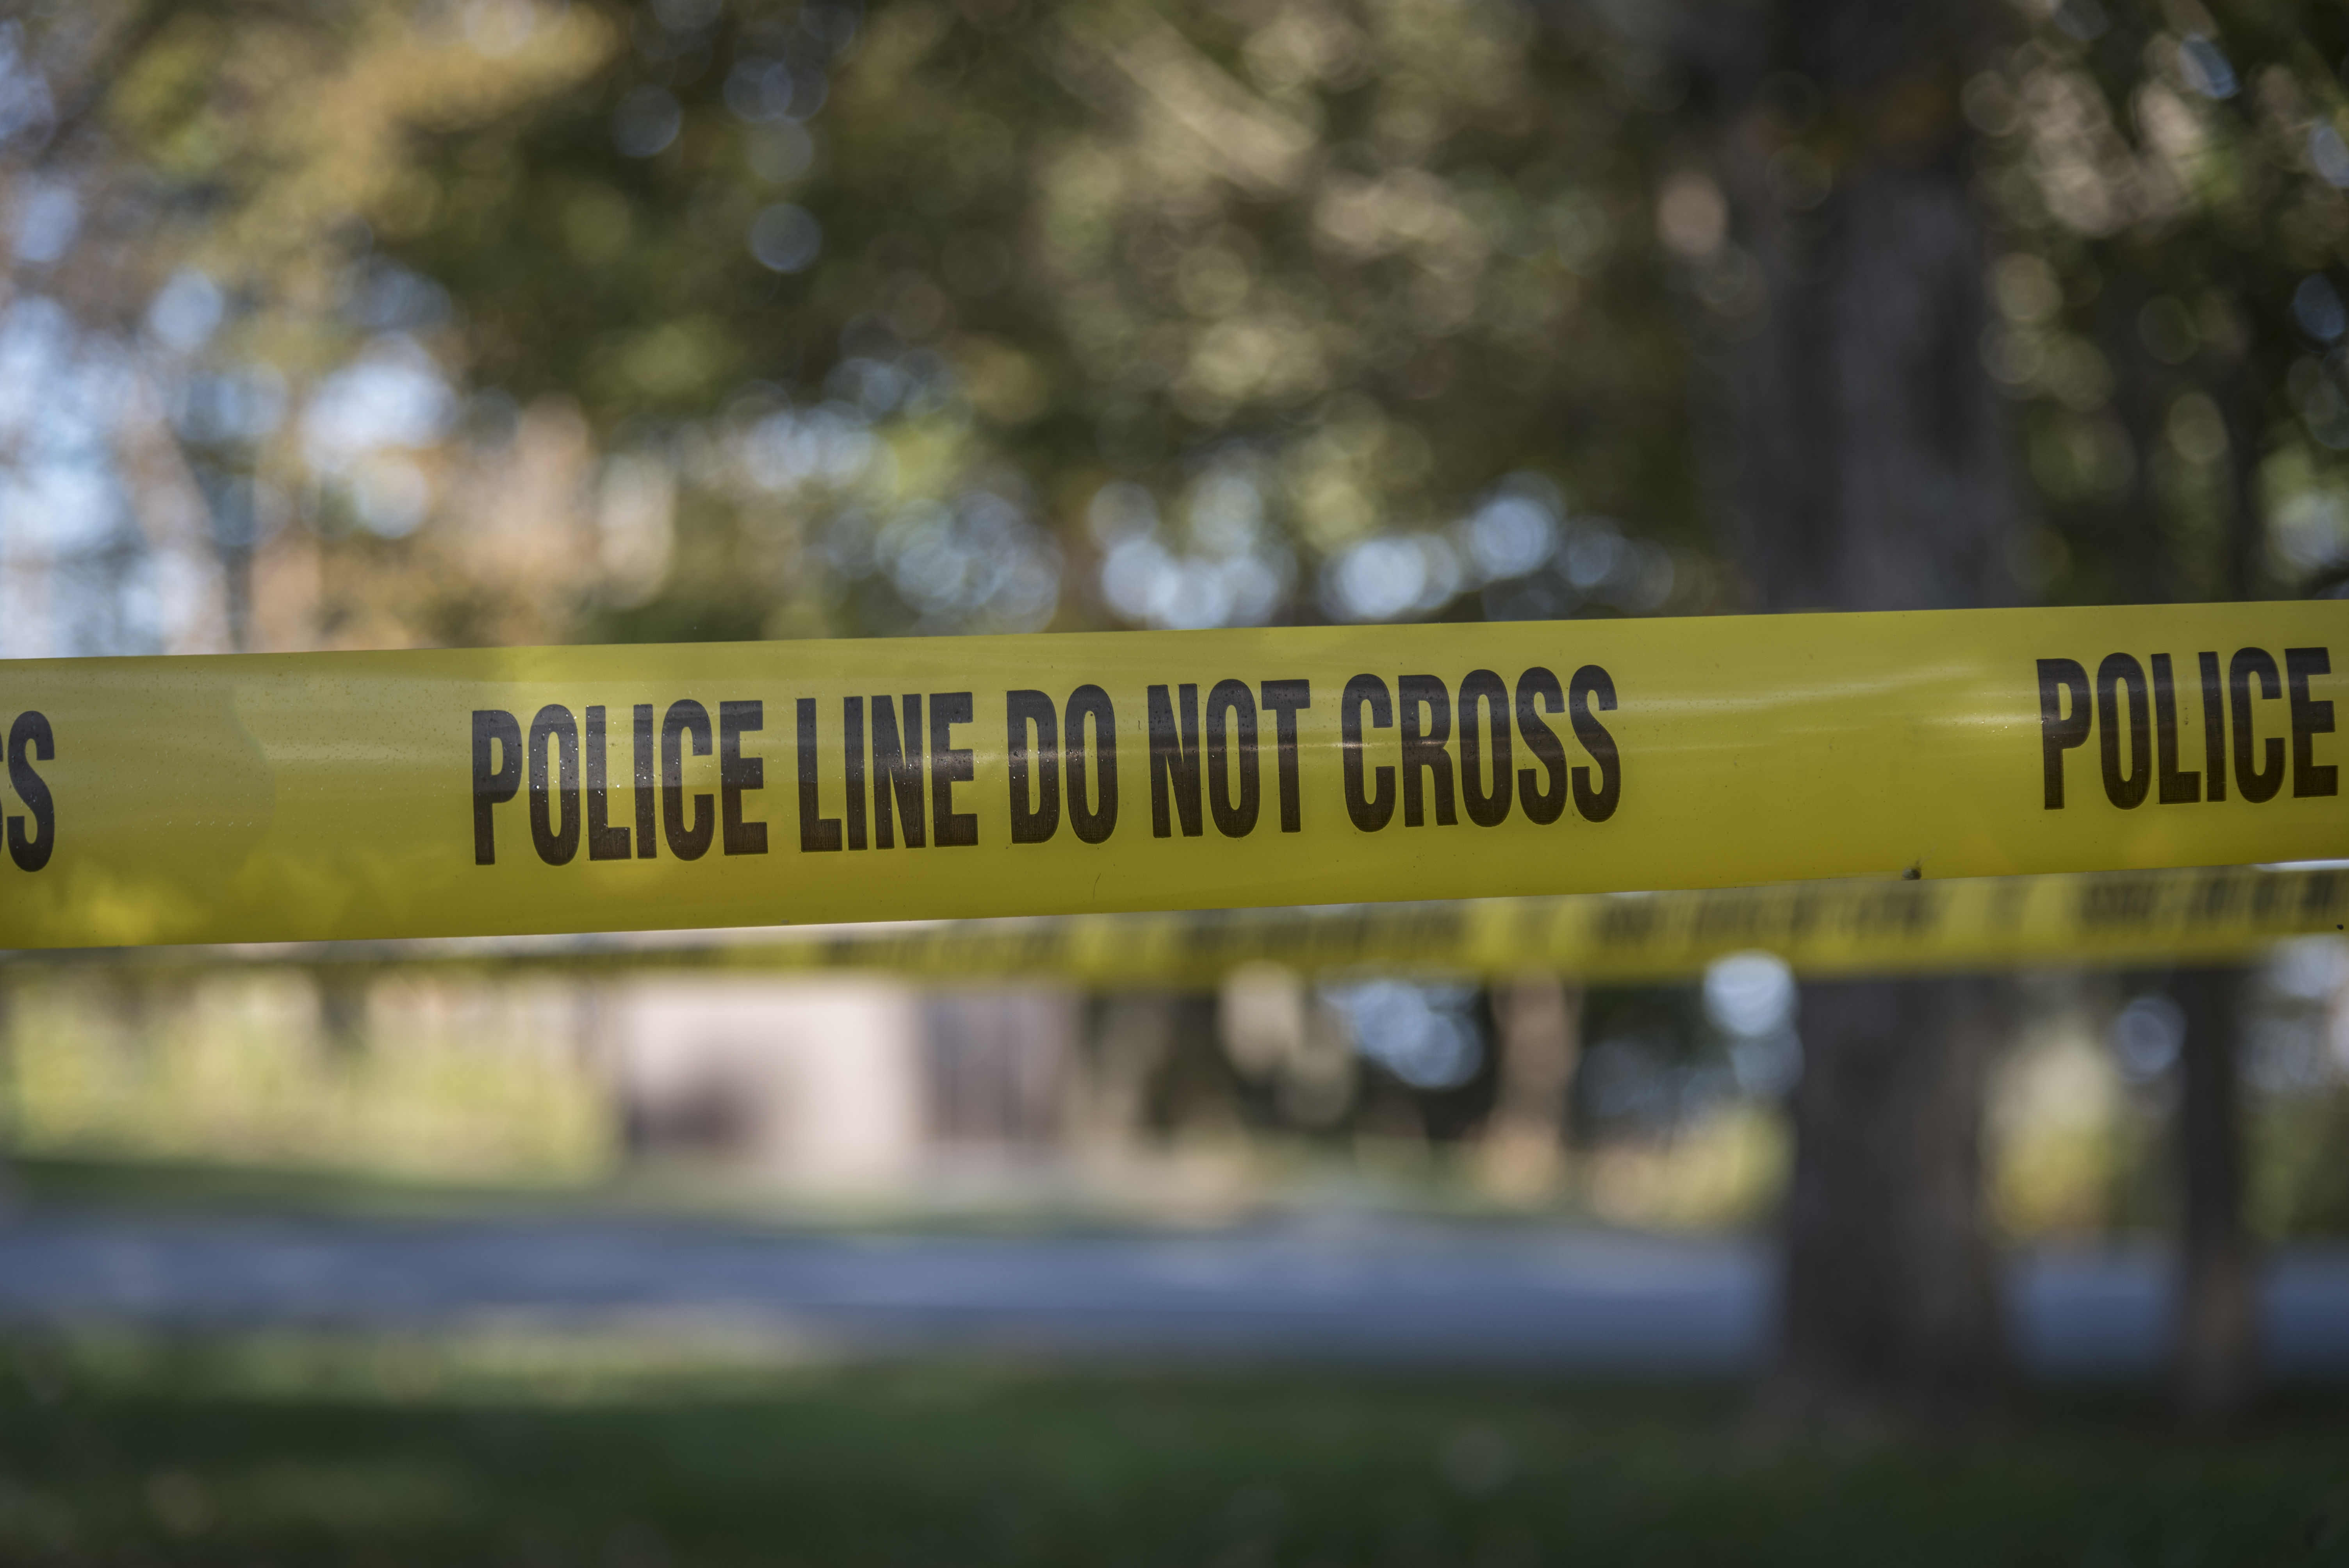 Two burglaries were reported in November 2019 in Logan Square and Hermosa on the Northwest Side.